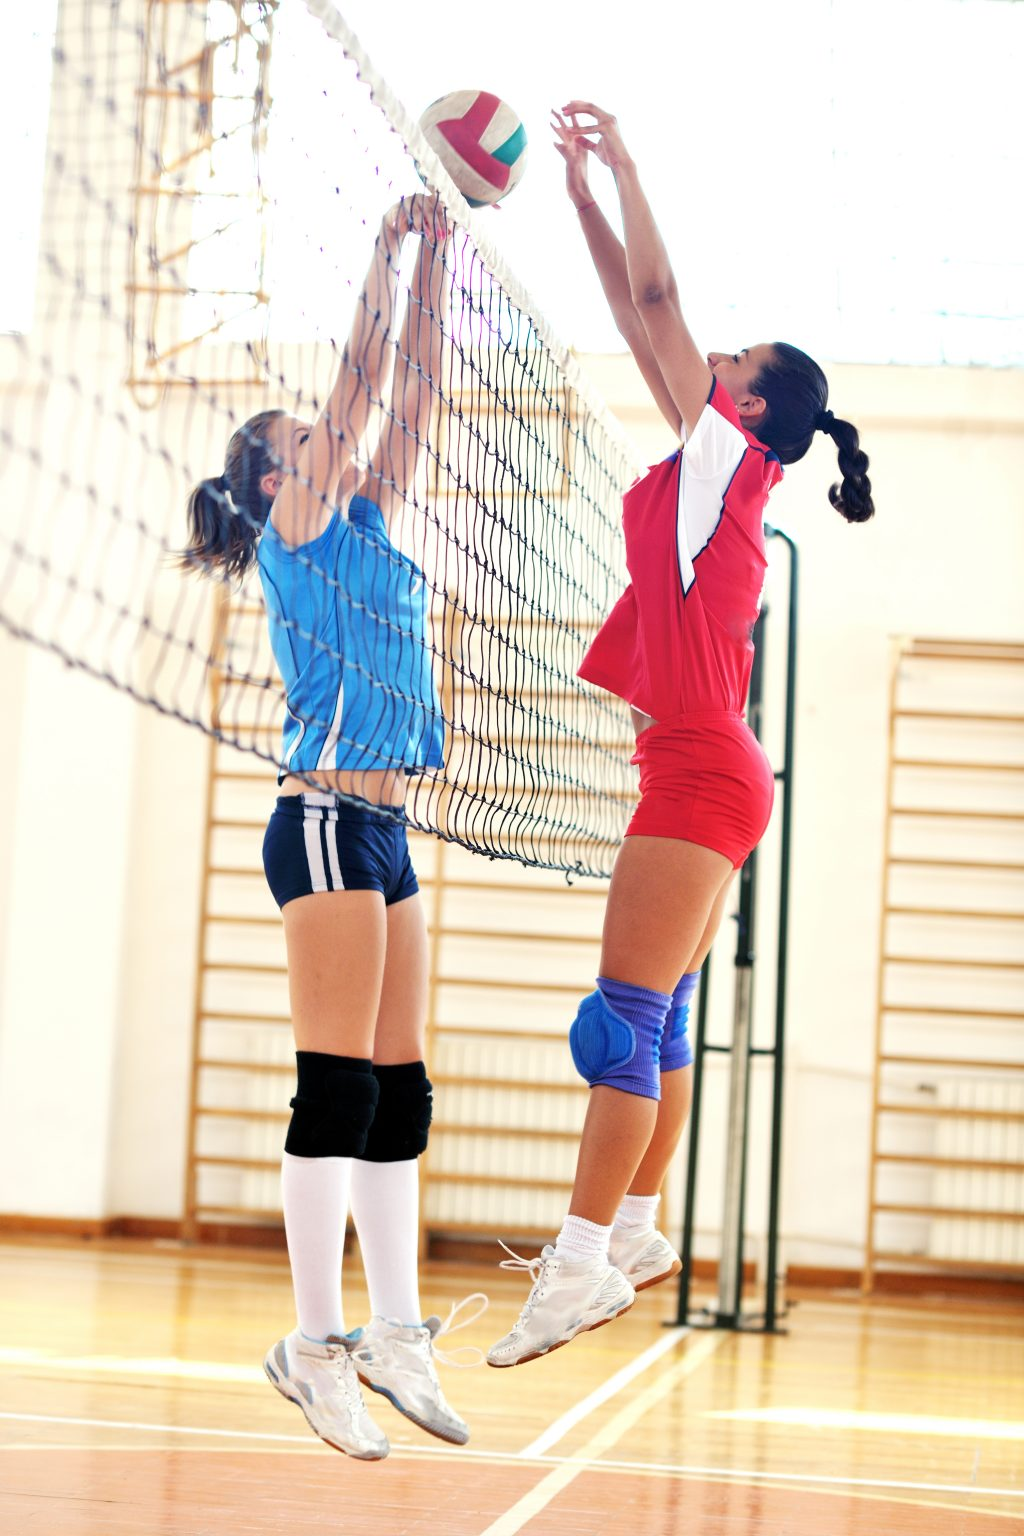 Keys to Volleyball